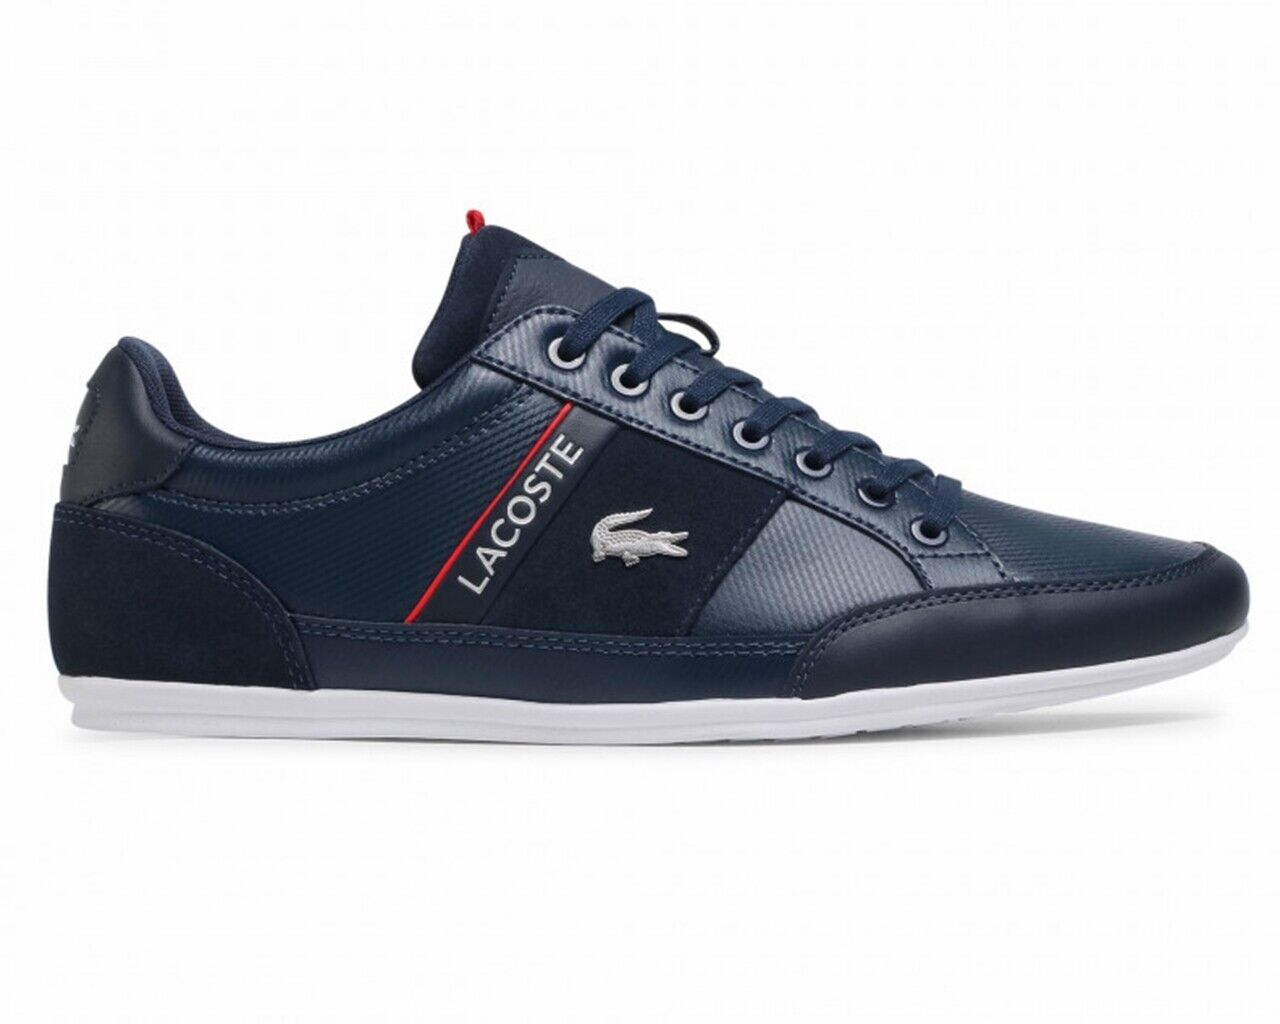 Lacoste Chaymon 0721 2 CMA Mens Leather Trainers Navy Sneakers Shoes